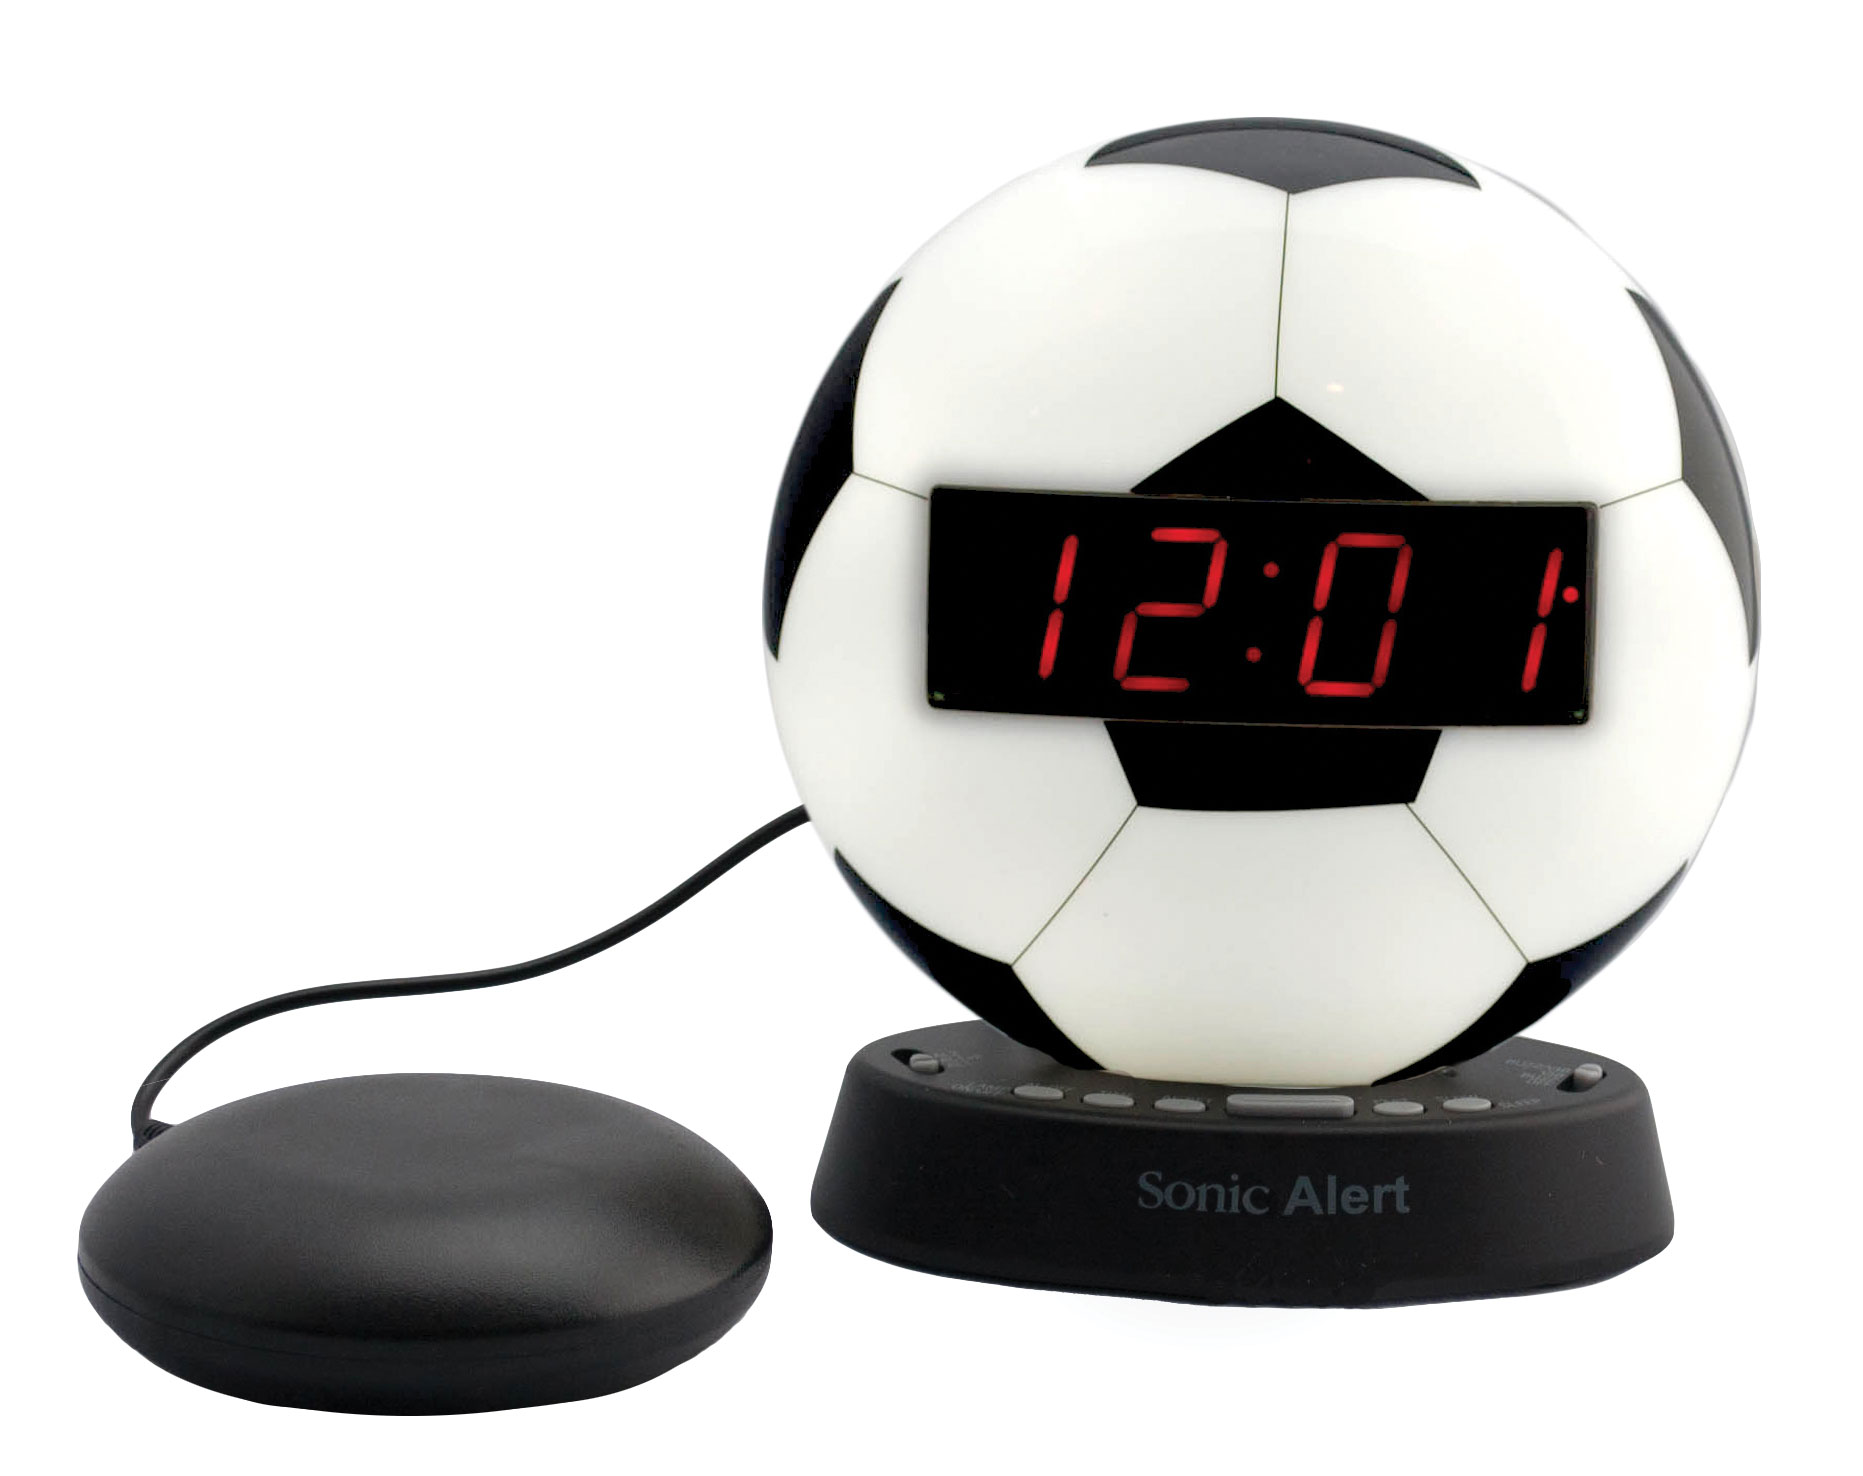 The Sonic Glow Soccer Ball Alarm Clock and Sonic Bomb Bed Shaker